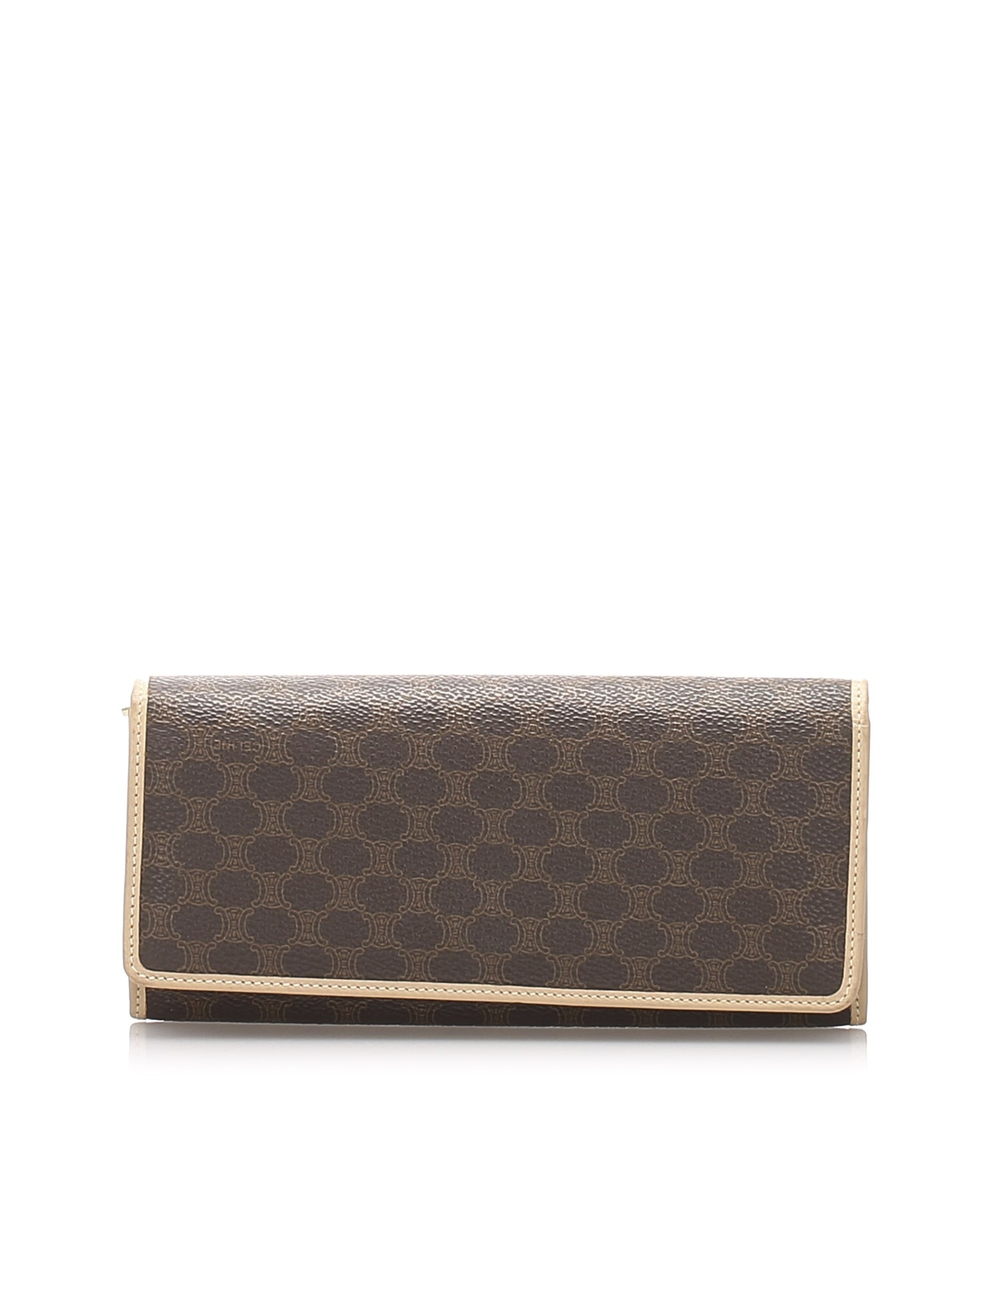 This long wallet features a PVC body with leather trim, a front flap with a snap button closure, and